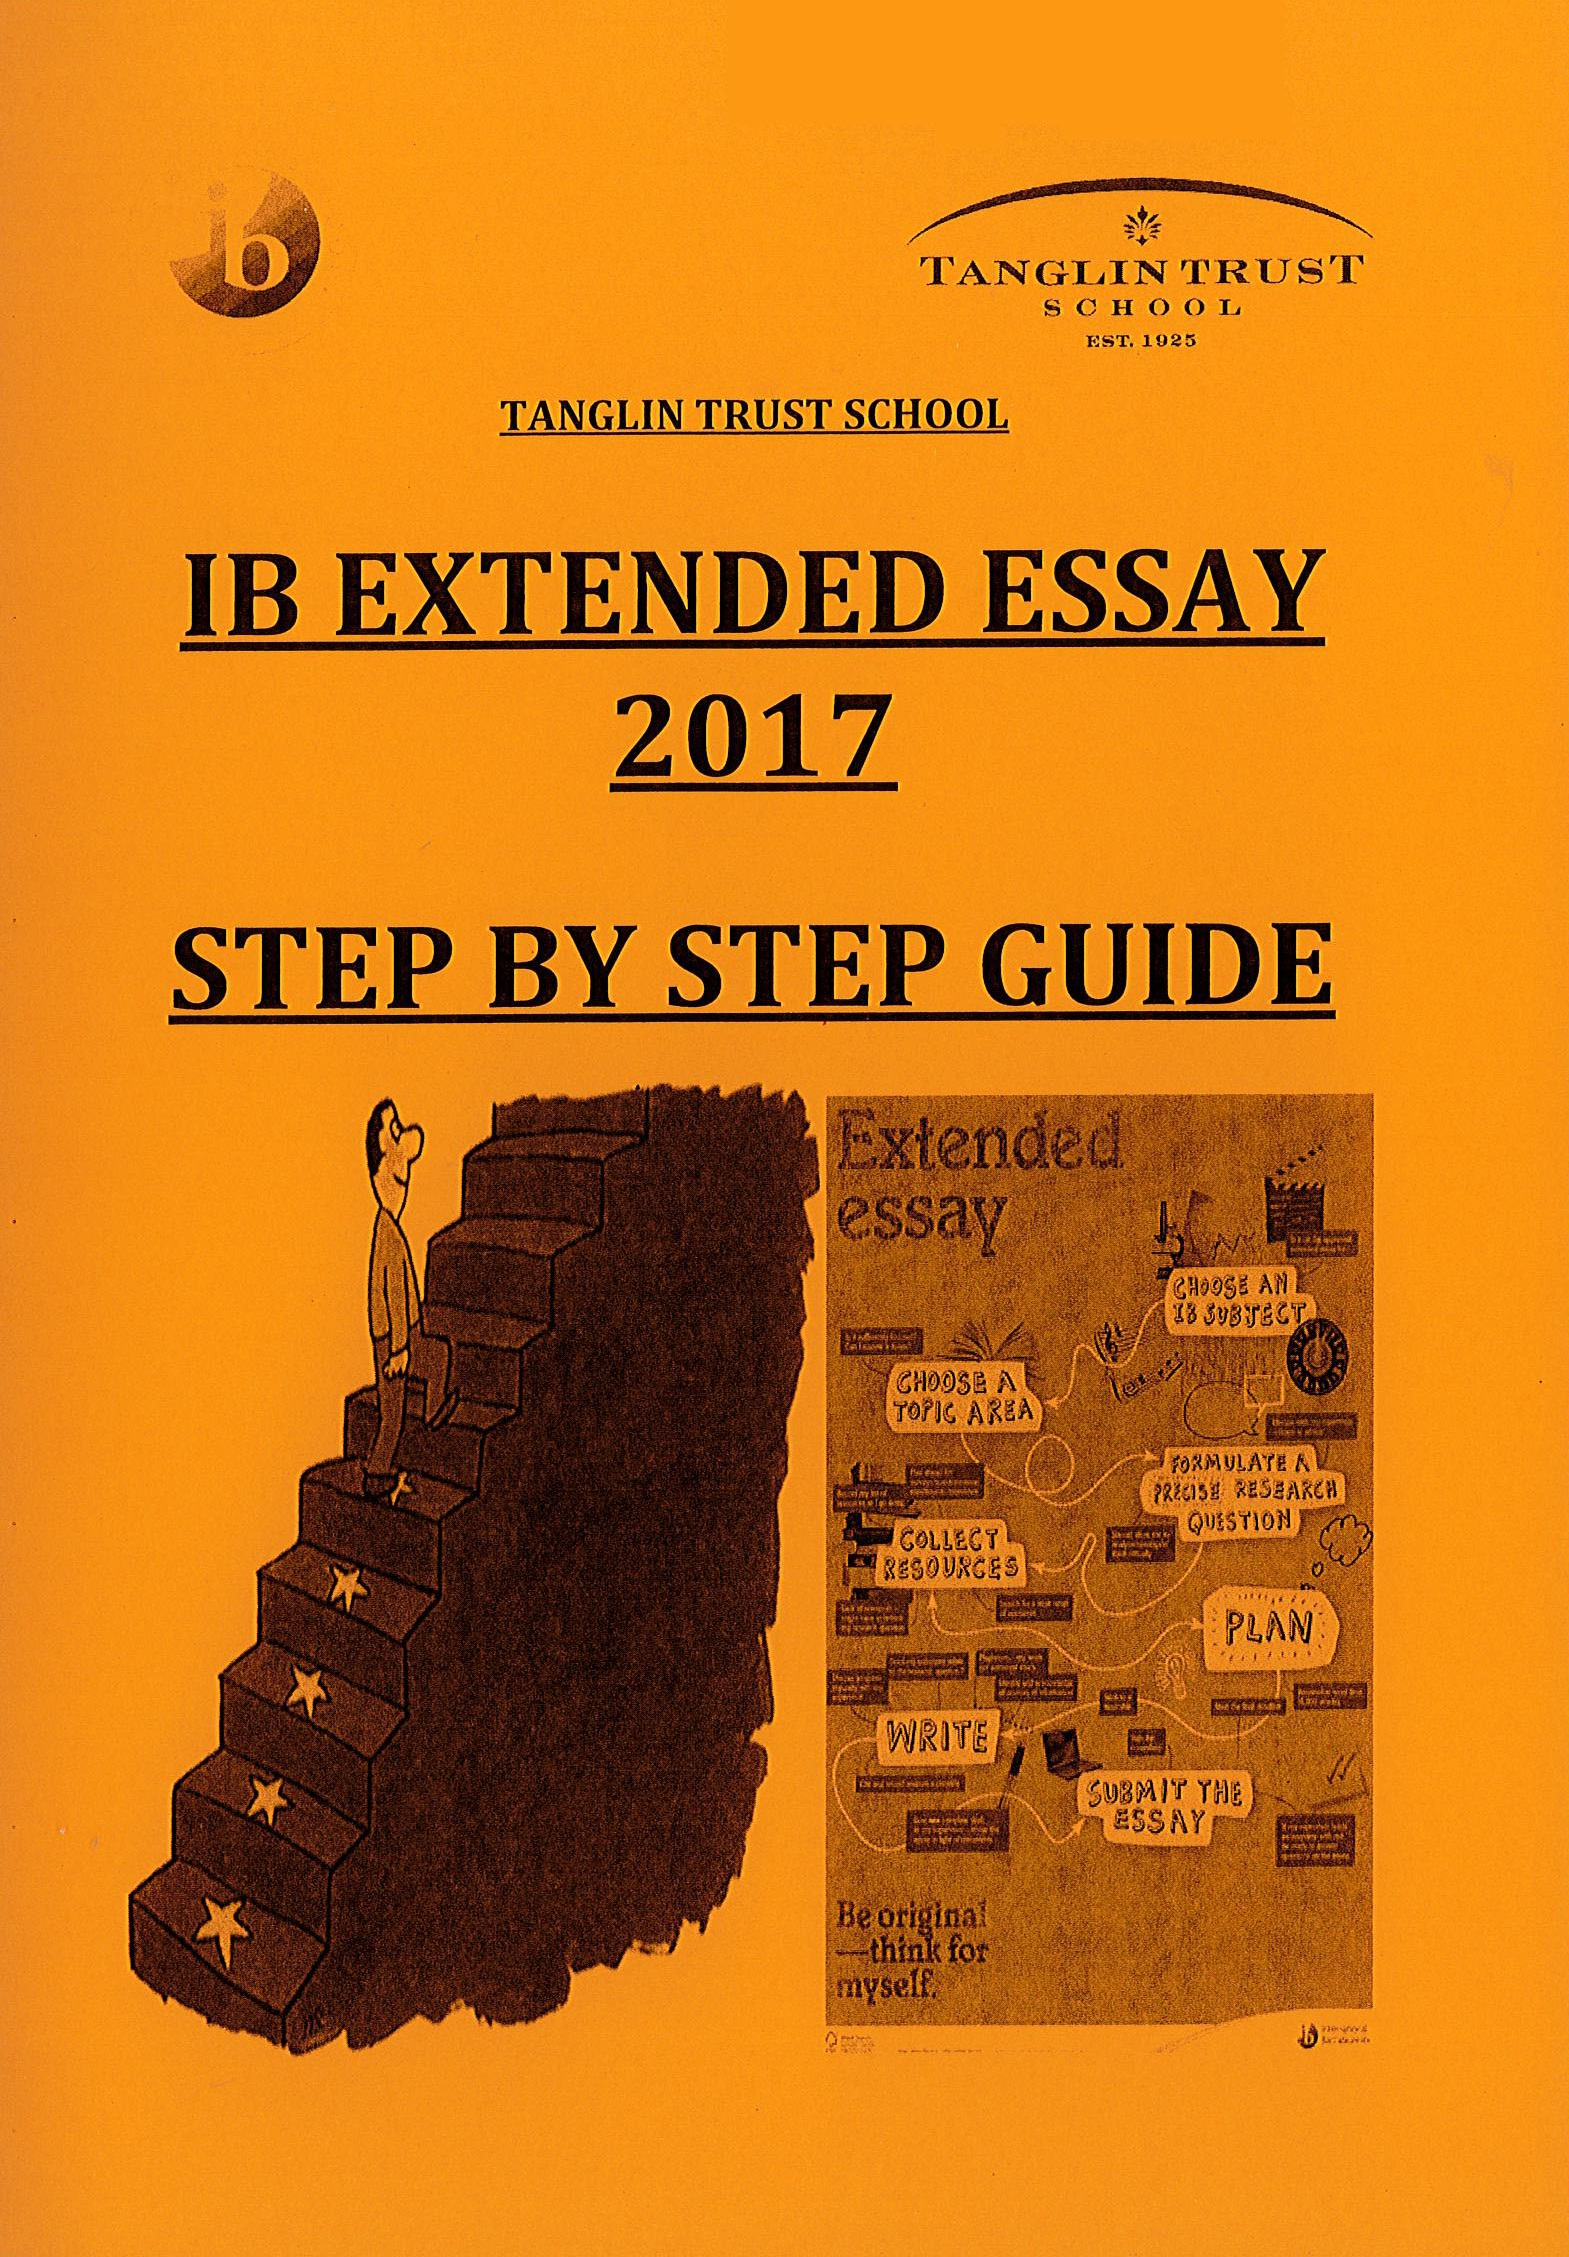 essay on trust extended definition essay confidence concluding  ib extended essay research skills libguides at tanglin trust ib extended essay research skills libguides at